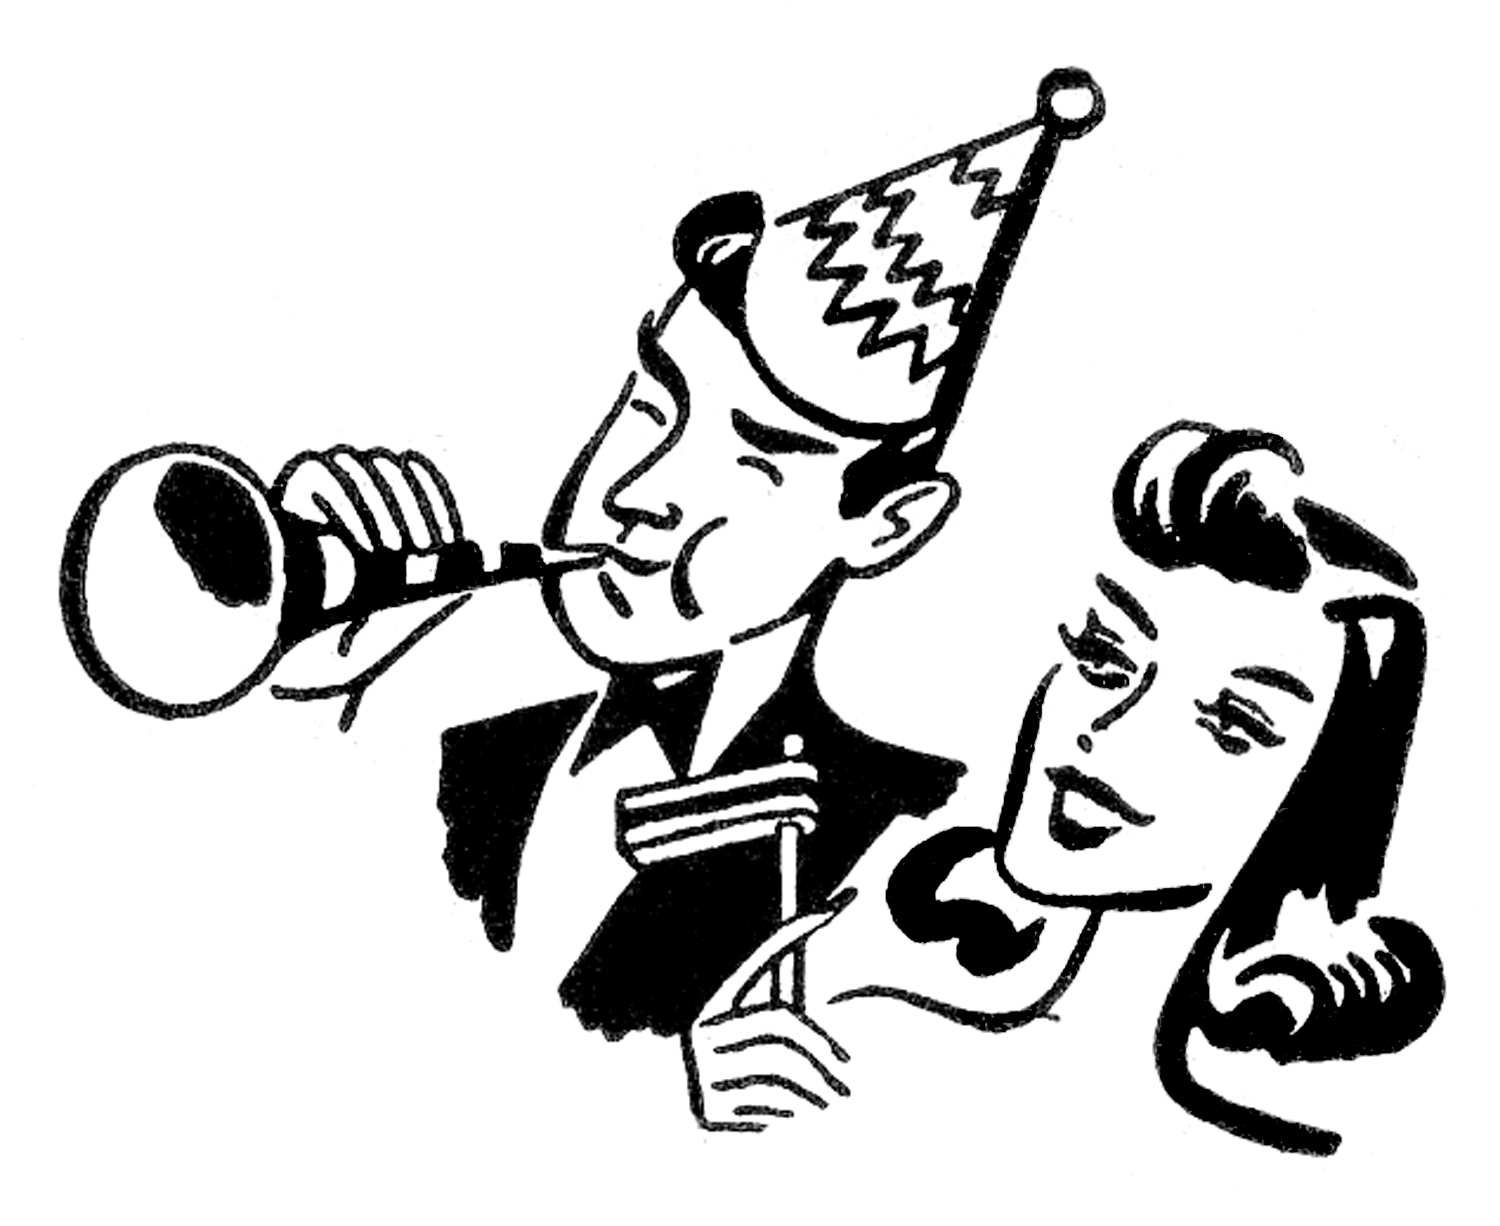 New Years Eve Clipart Black And White.